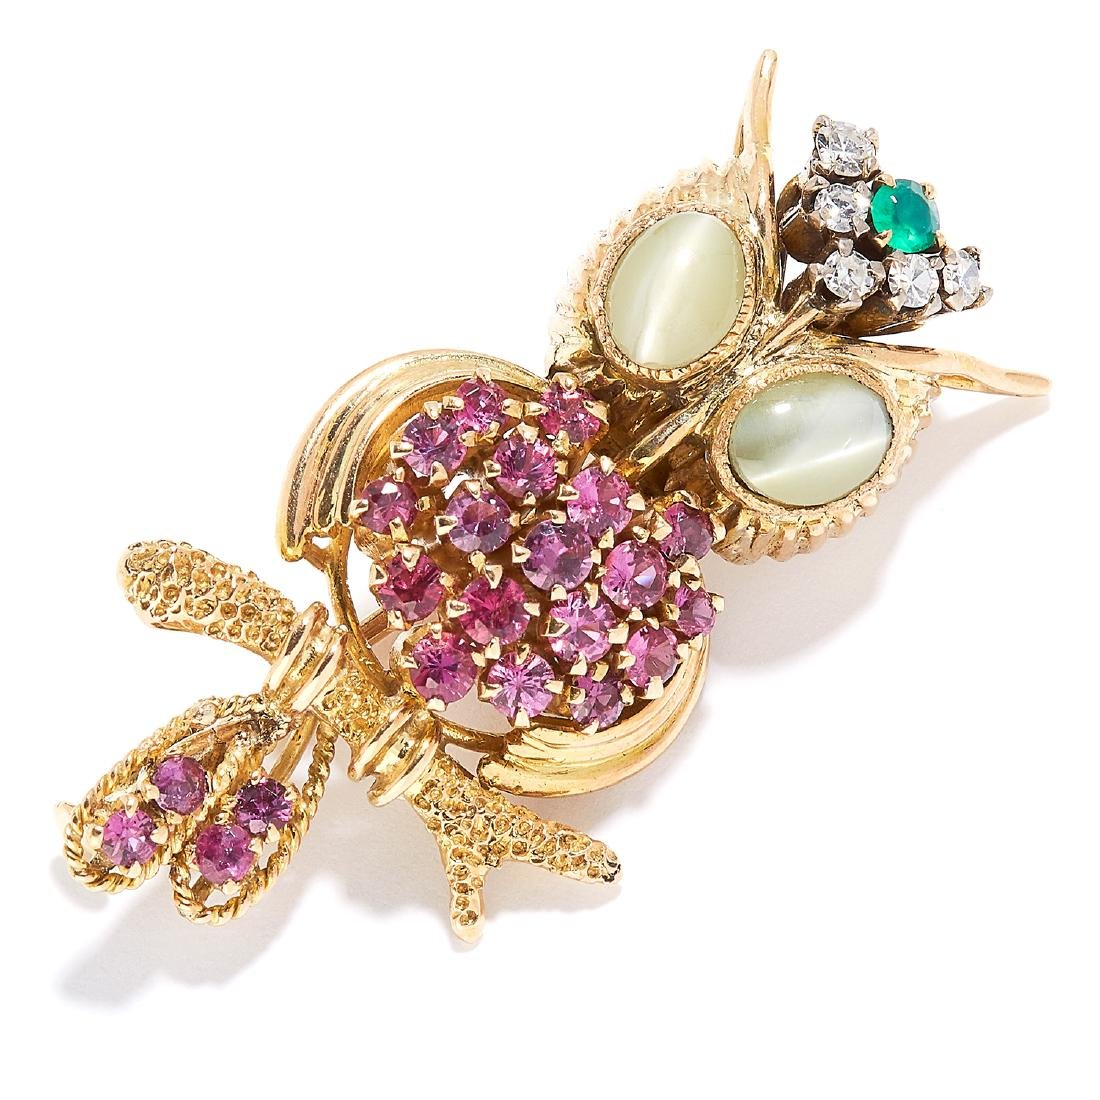 GEMSET NOVELTY OWL BROOCH in 18ct yellow gold,